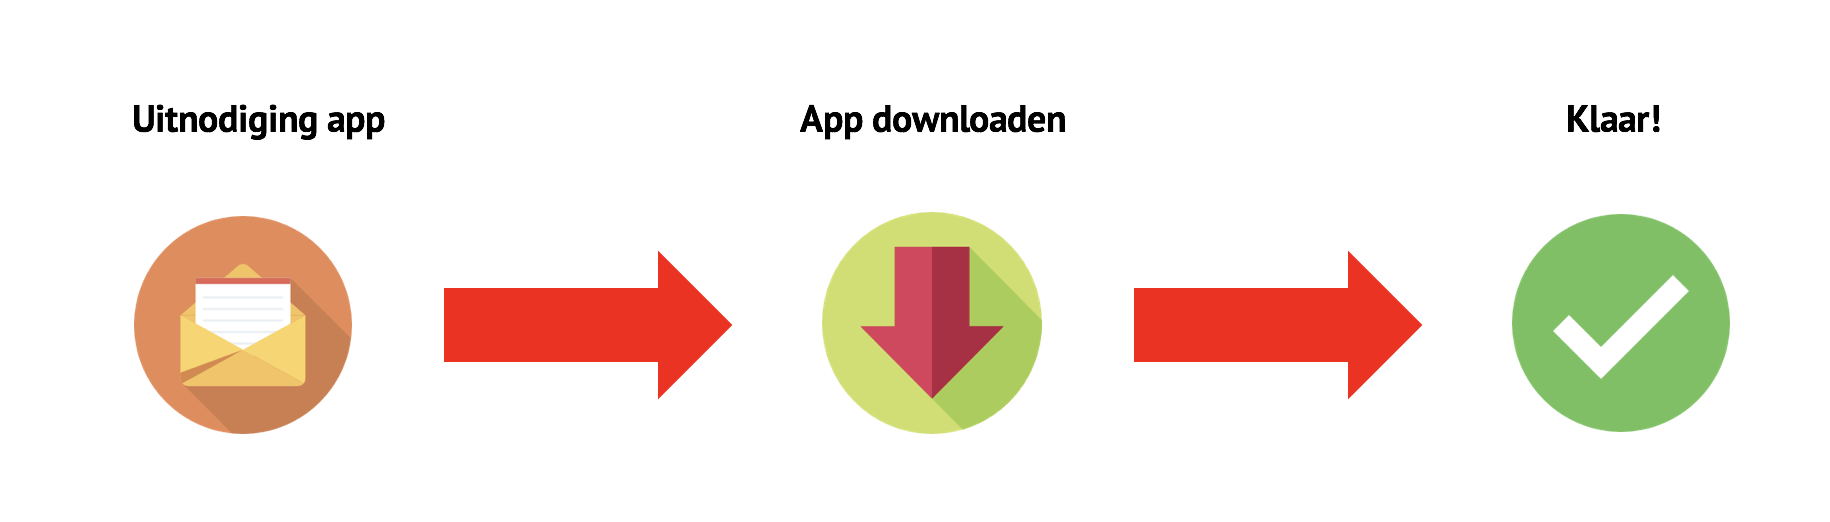 app omschrijving